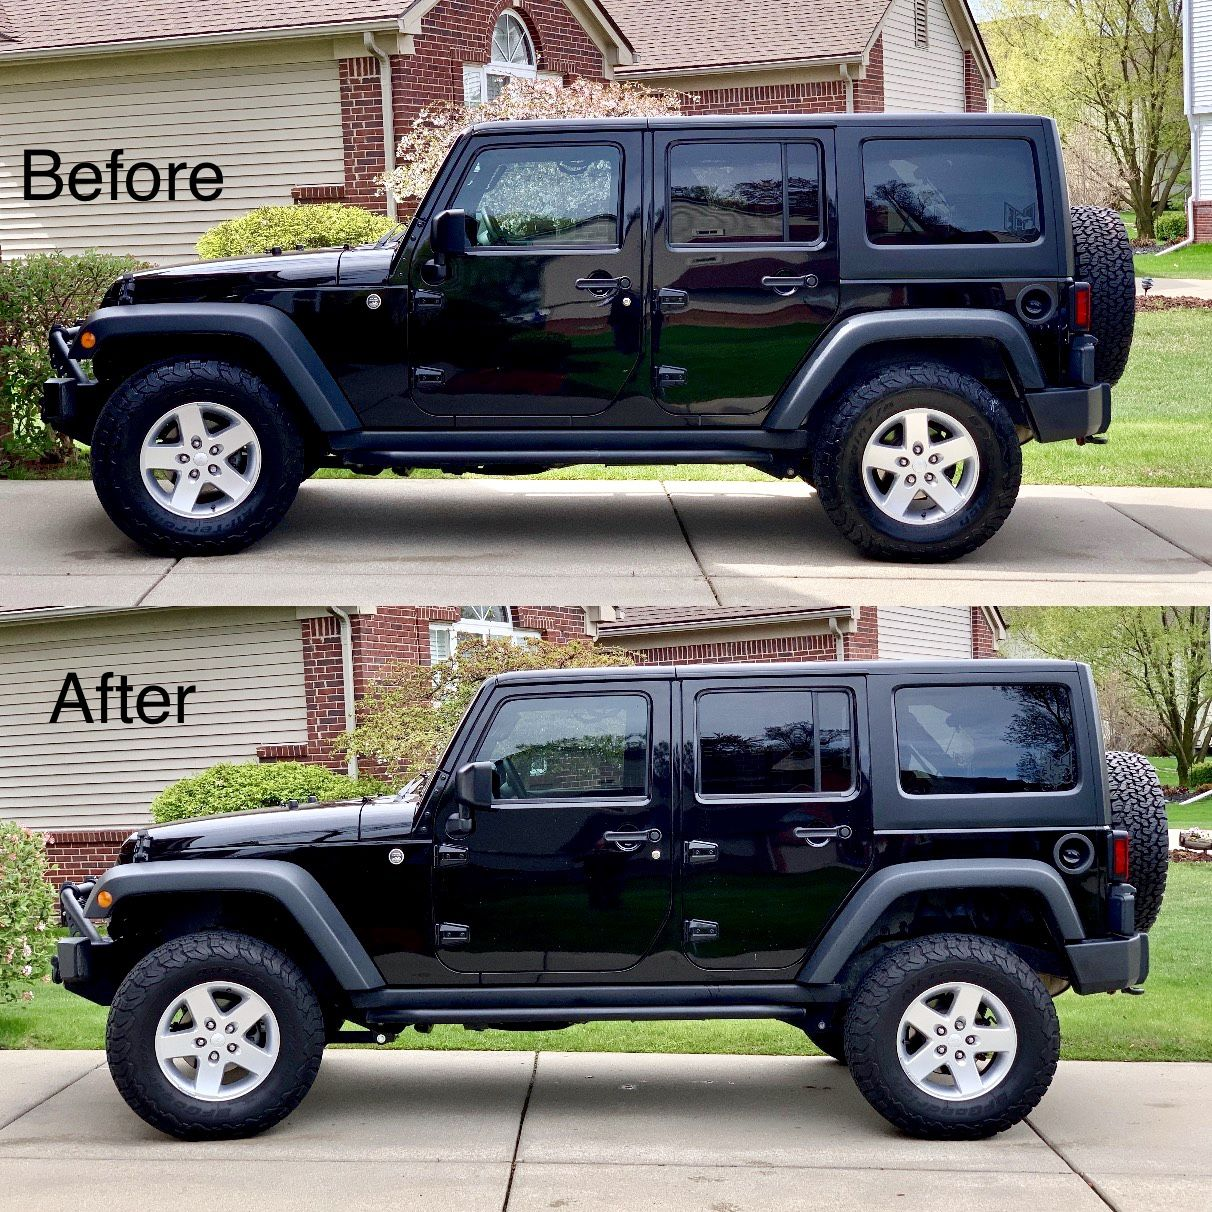 Aev 2 5 Lift On 33 Ko2s Before And After The Lift Jeep Jeep Life Monster Trucks